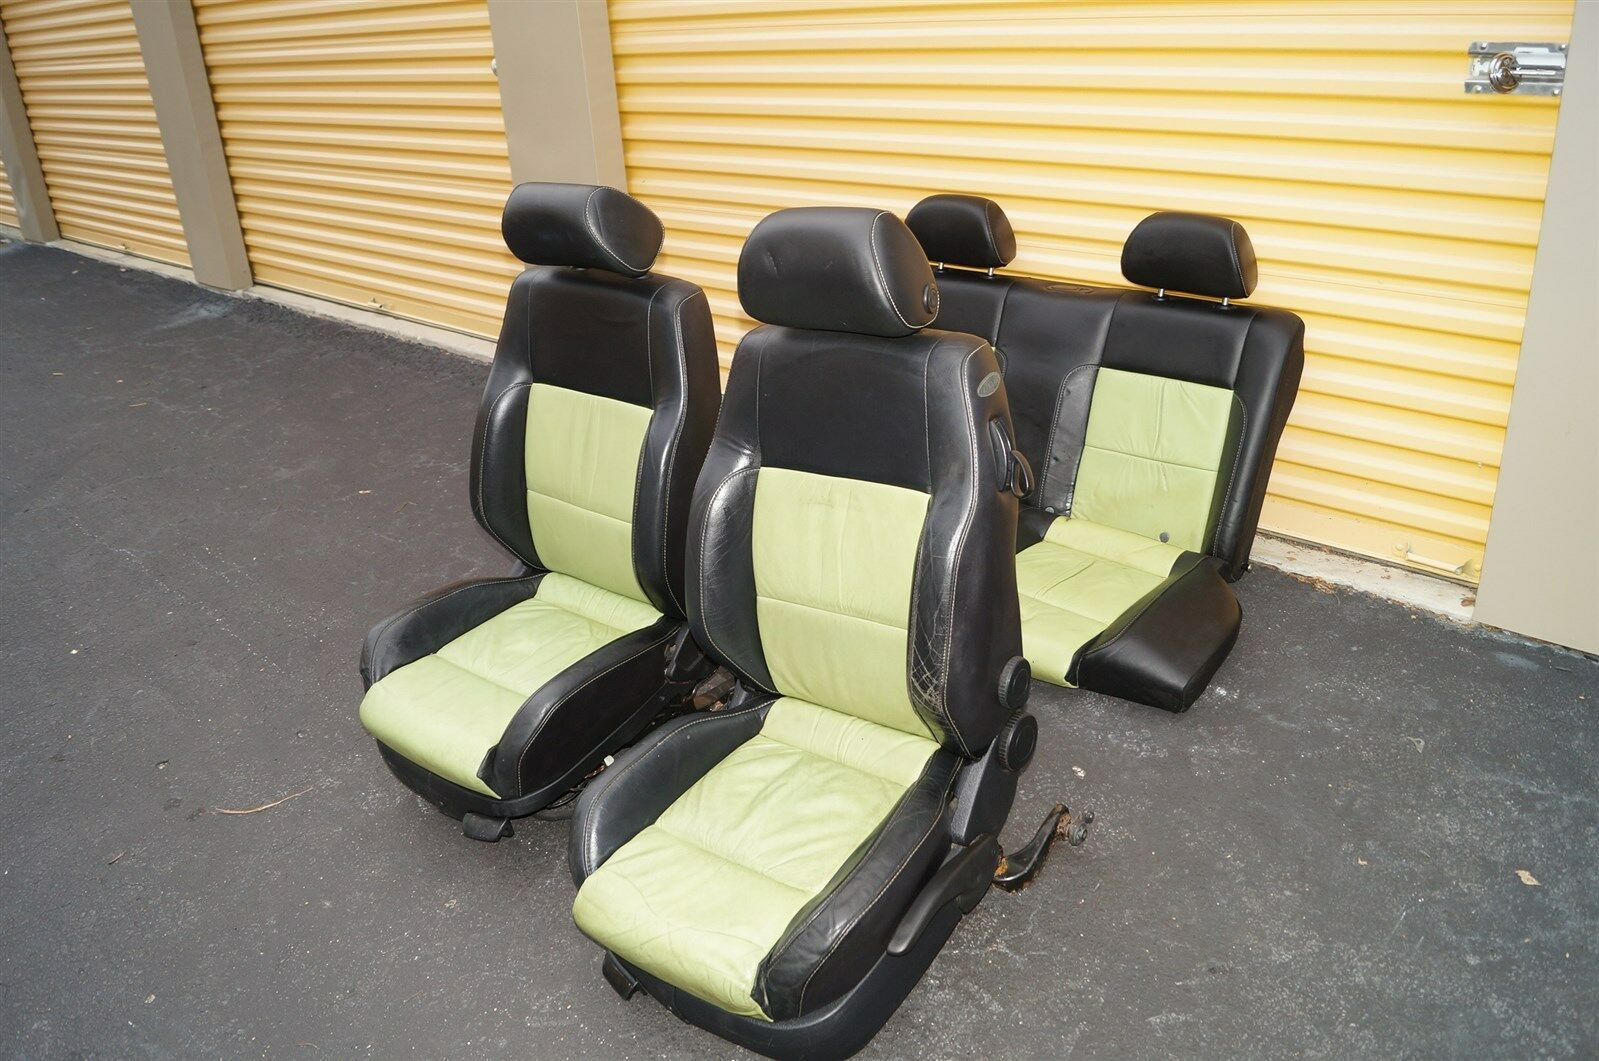 00-04 Volkswagen Vw Beetle Bug Hatchback Turbo GLS Leather Seat Set Green & BLK